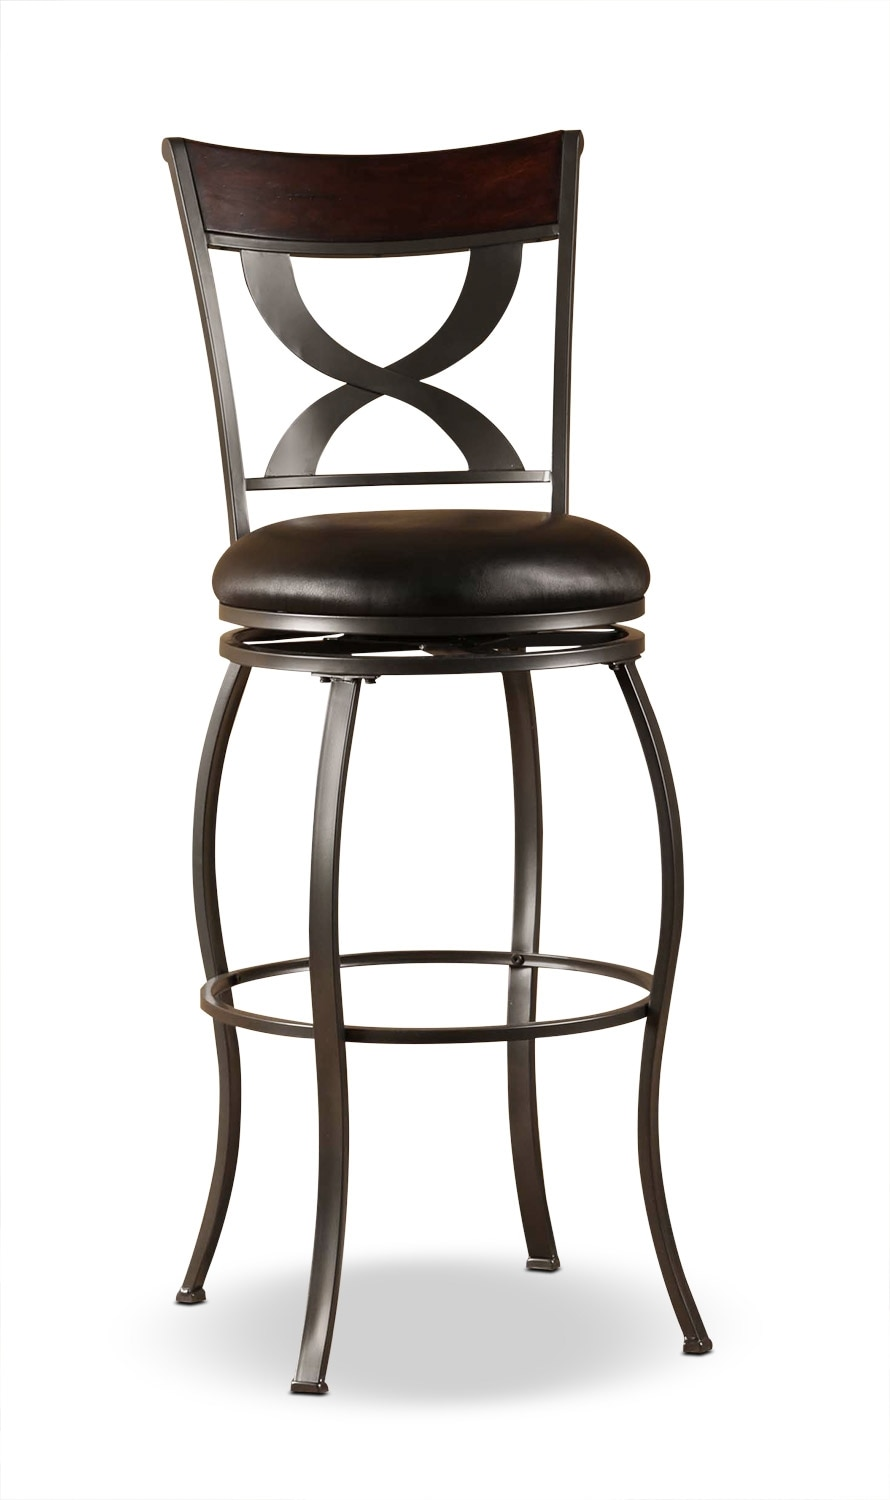 Dining Room Furniture - Stockport Swivel Barstool